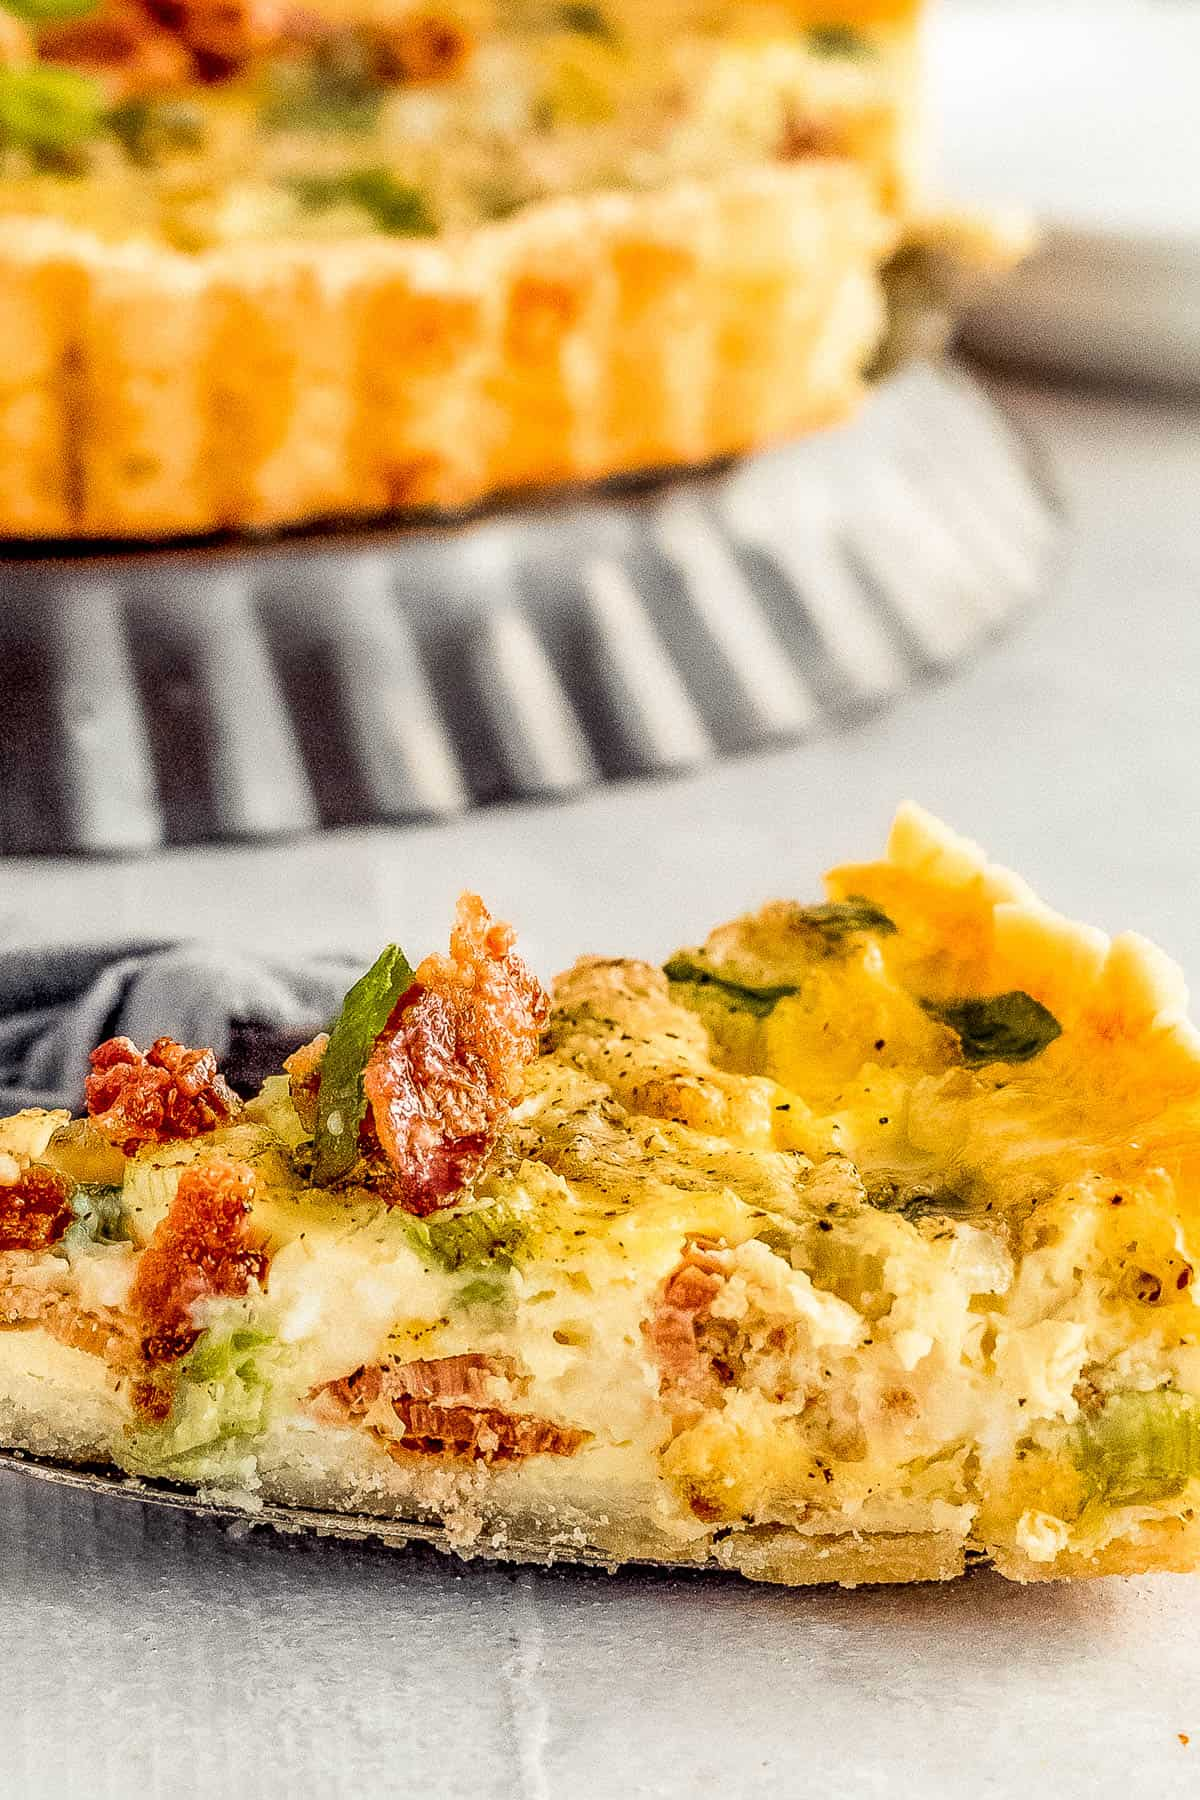 A Close-Up Shot of a Slice of Bacon Quiche Lorraine on a Metal Serving Spatula